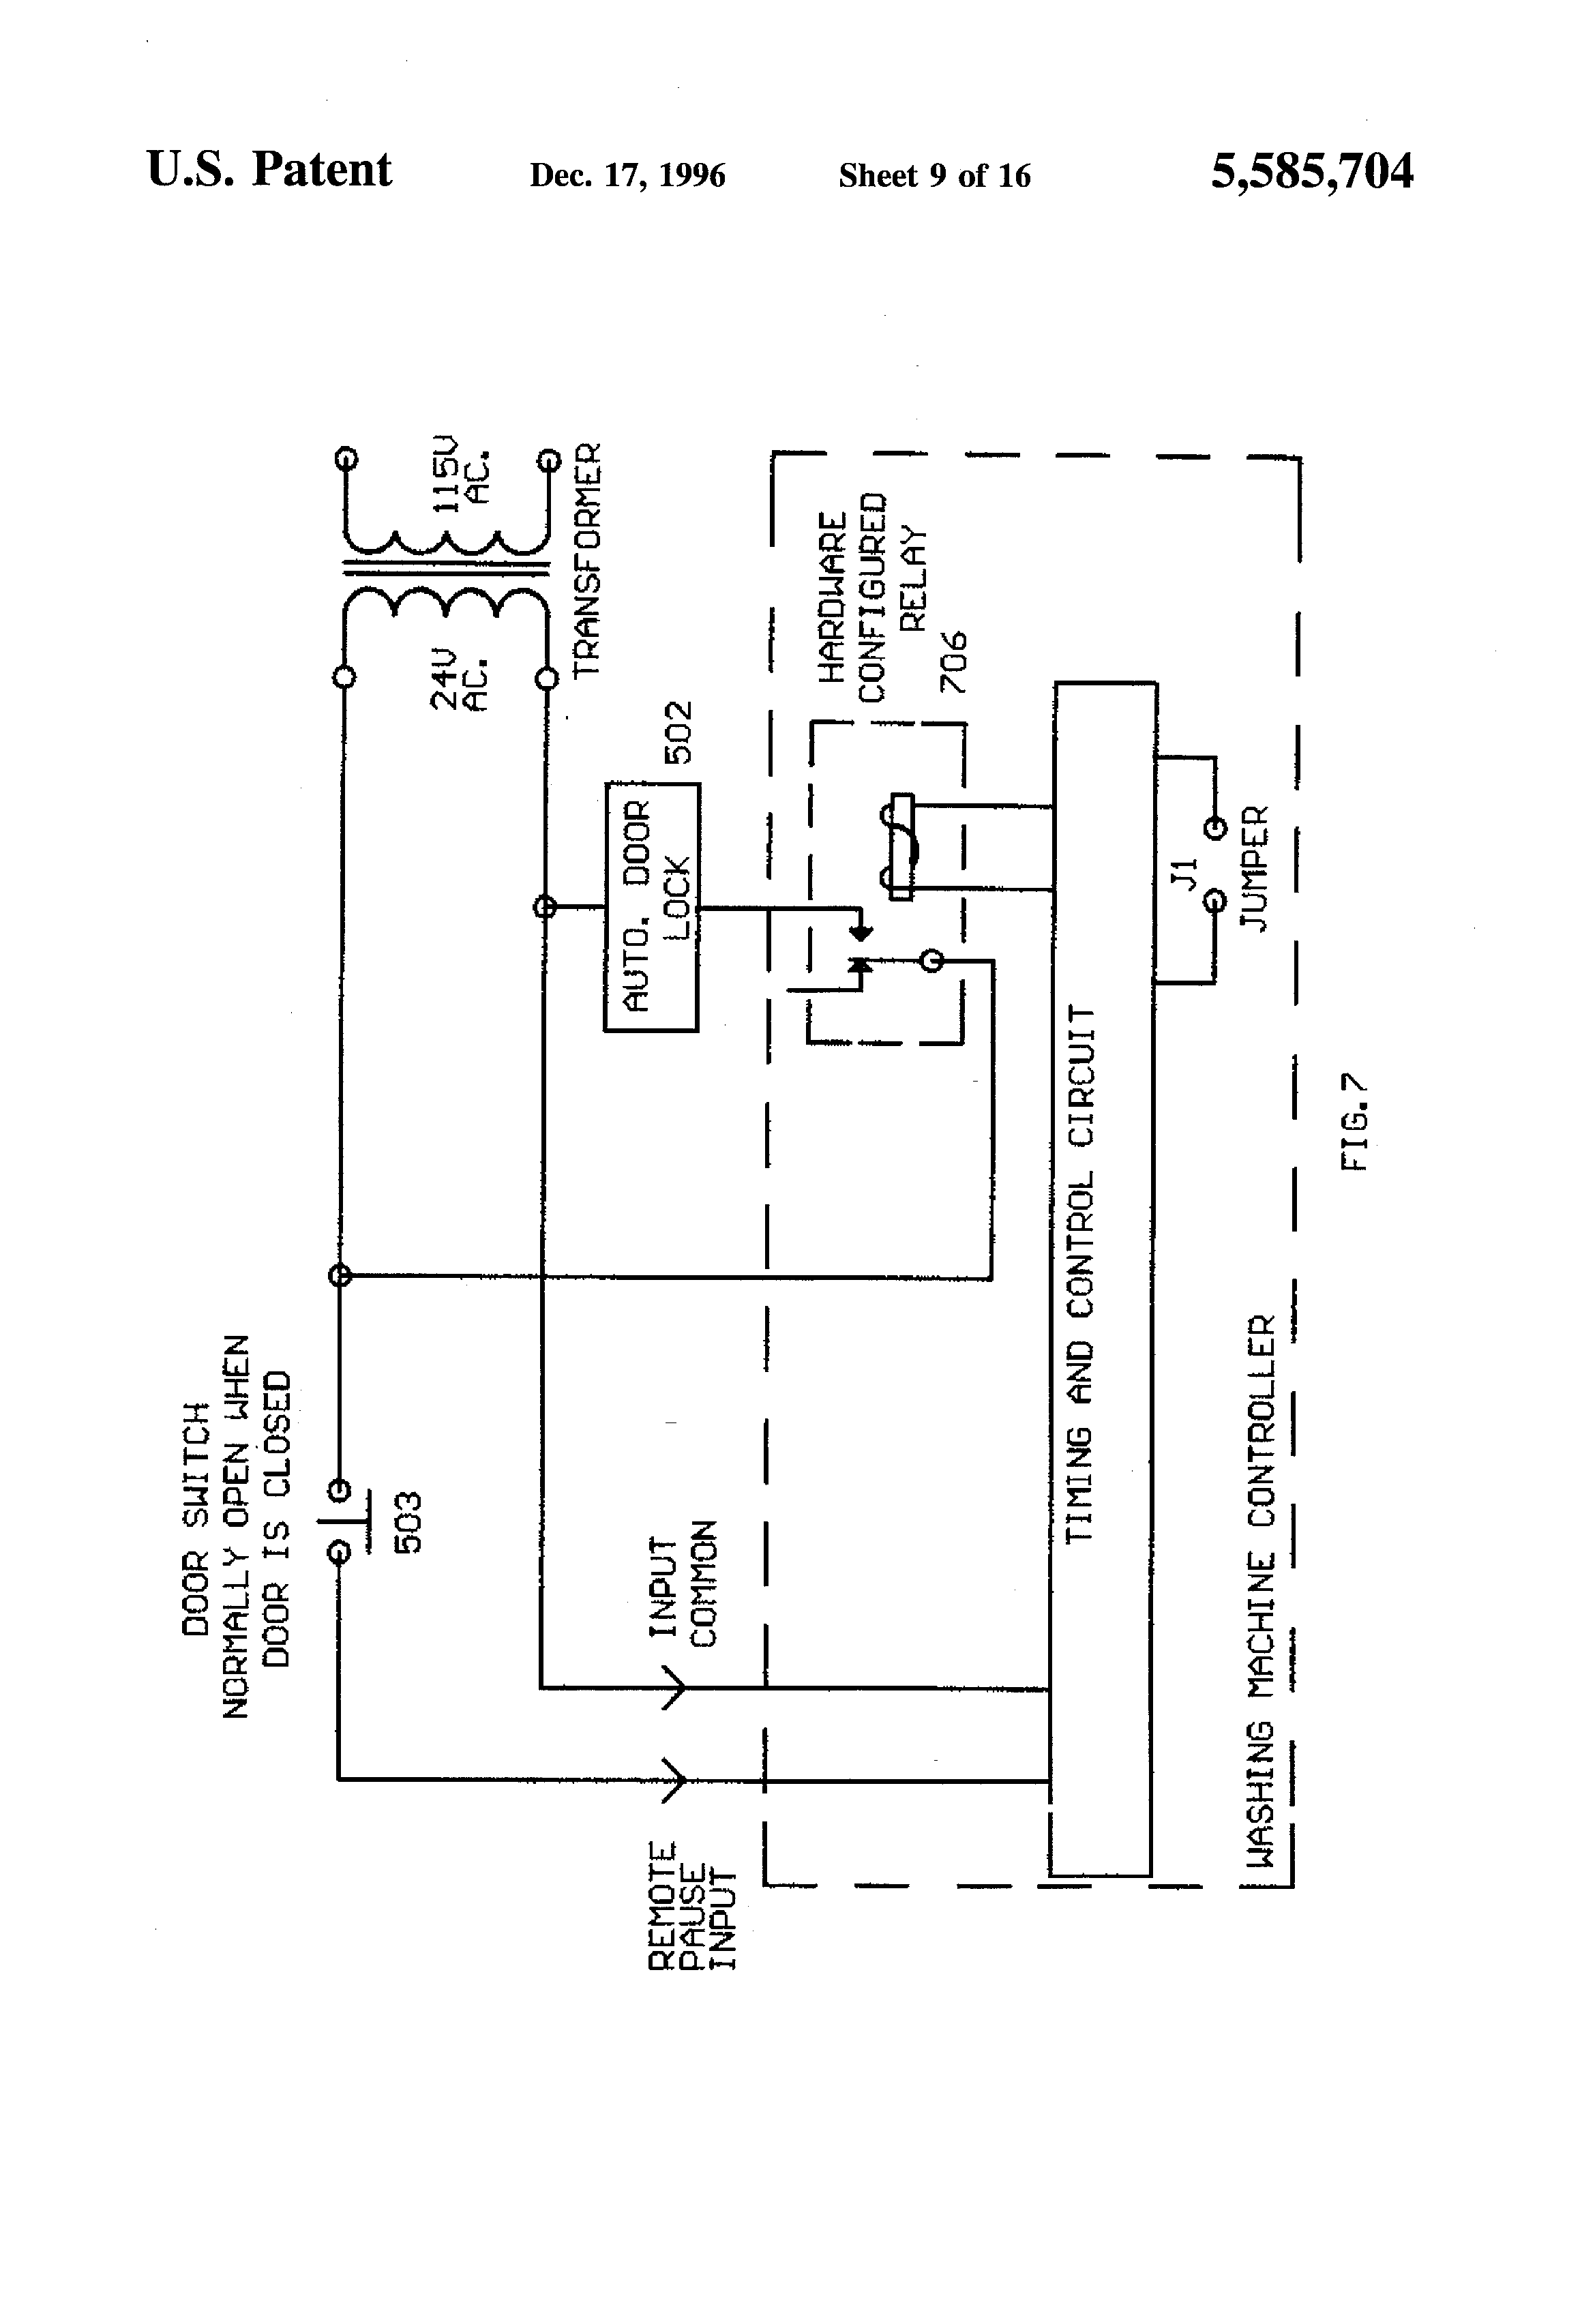 Whirlpool Washer Motor Wiring Diagram 37 Images Control Board Us5585704 9resize8402c1234 Patent Computer Means For Commercial Washing Machine Circuit